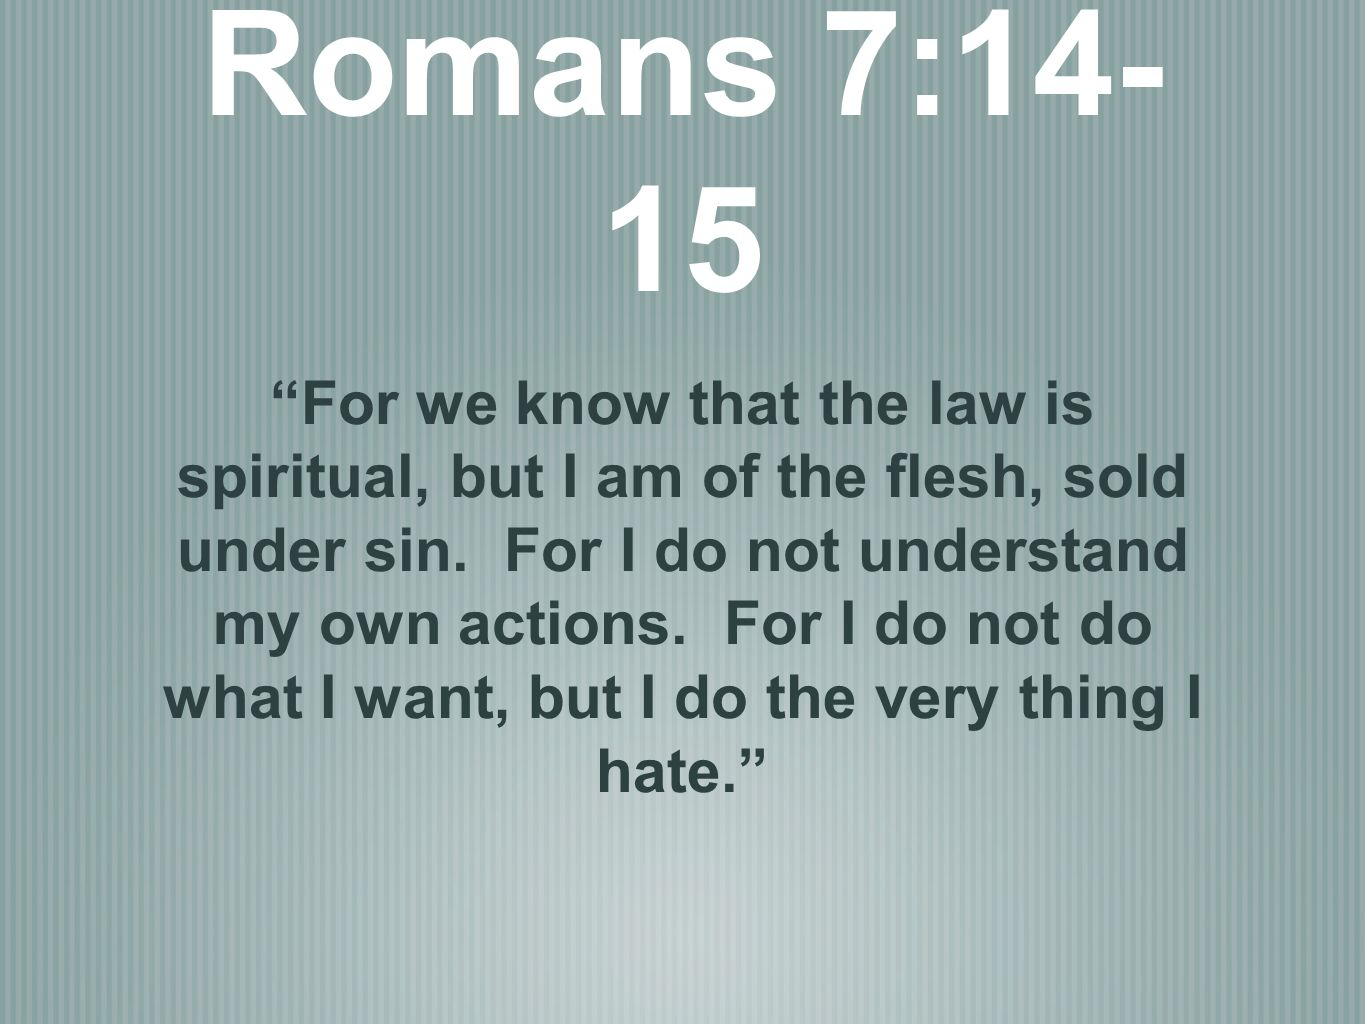 Romans 7:14- 15 For we know that the law is spiritual, but I am of the flesh, sold under sin. For I do not understand my own actions. For I do not do